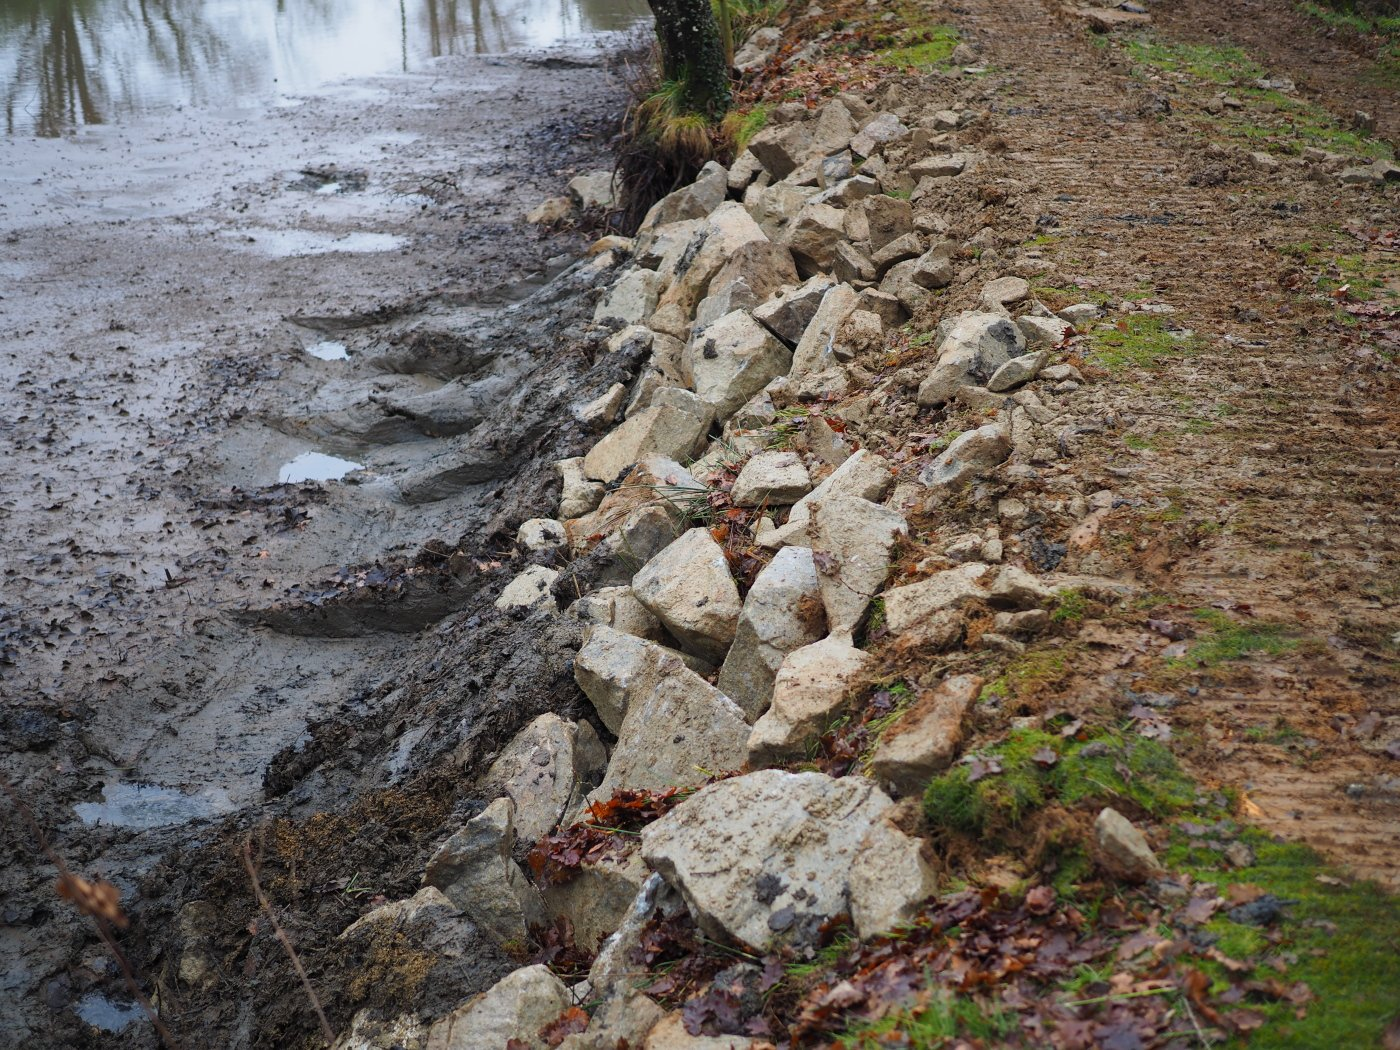 reinforcing the carp lake bank with rocks